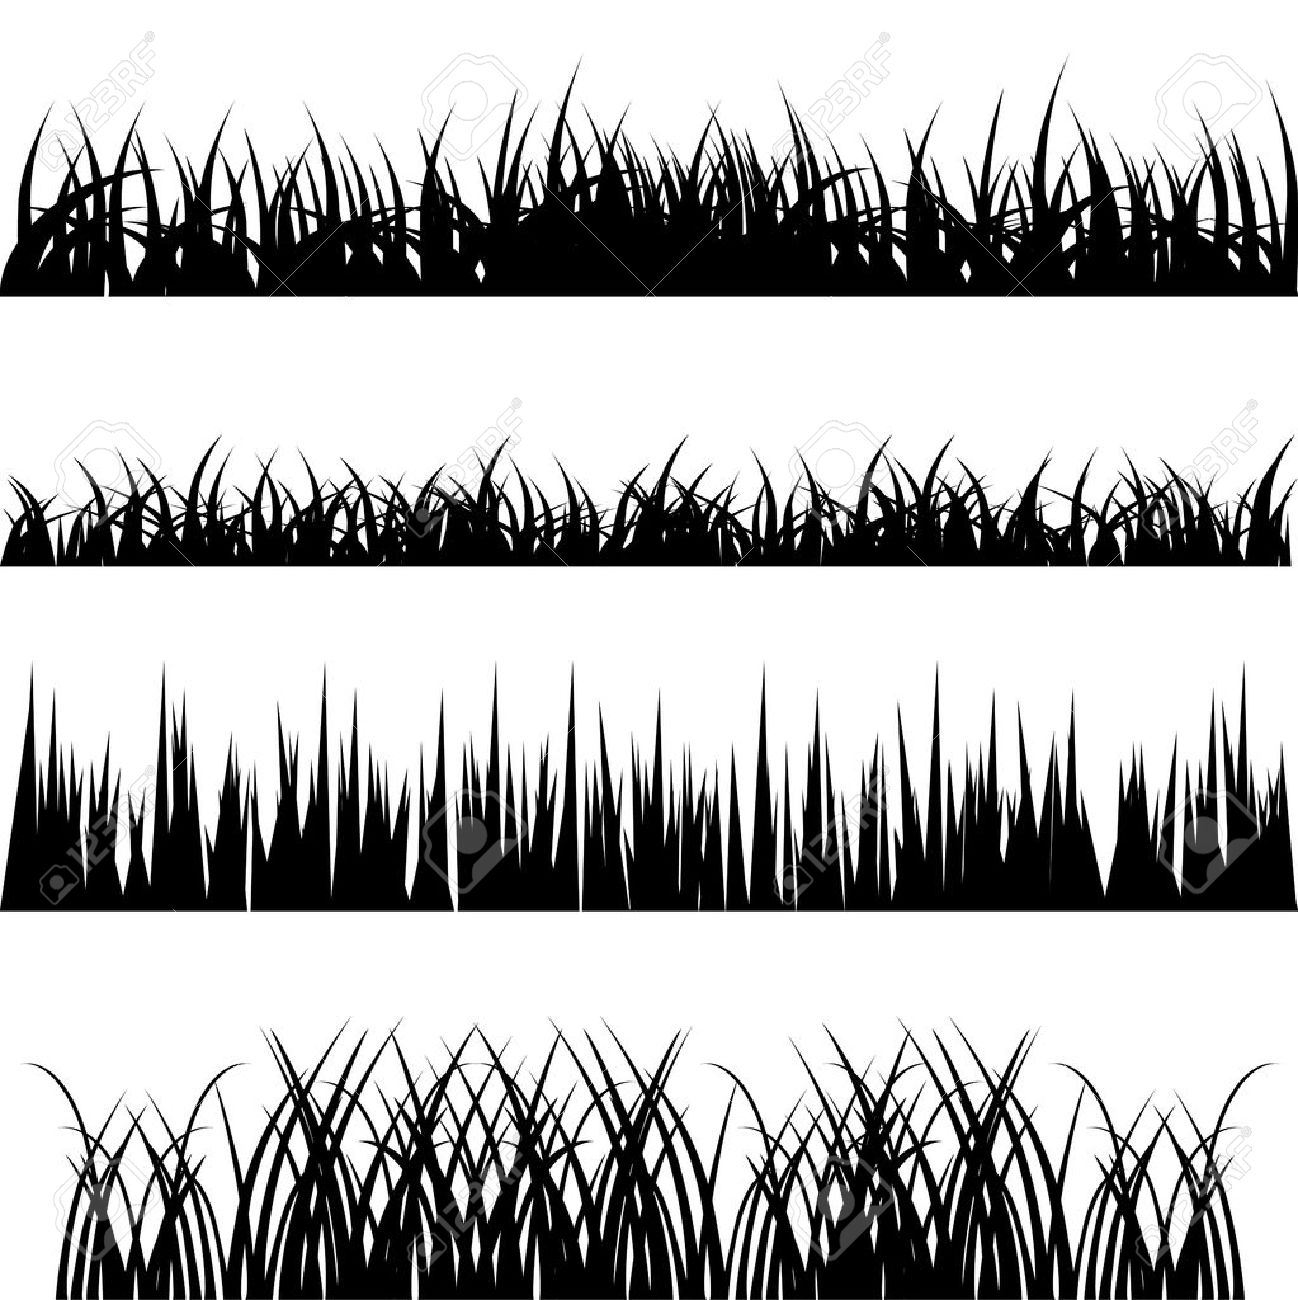 grass vector set royalty free cliparts 721141 png images pngio grass vector set royalty free cliparts